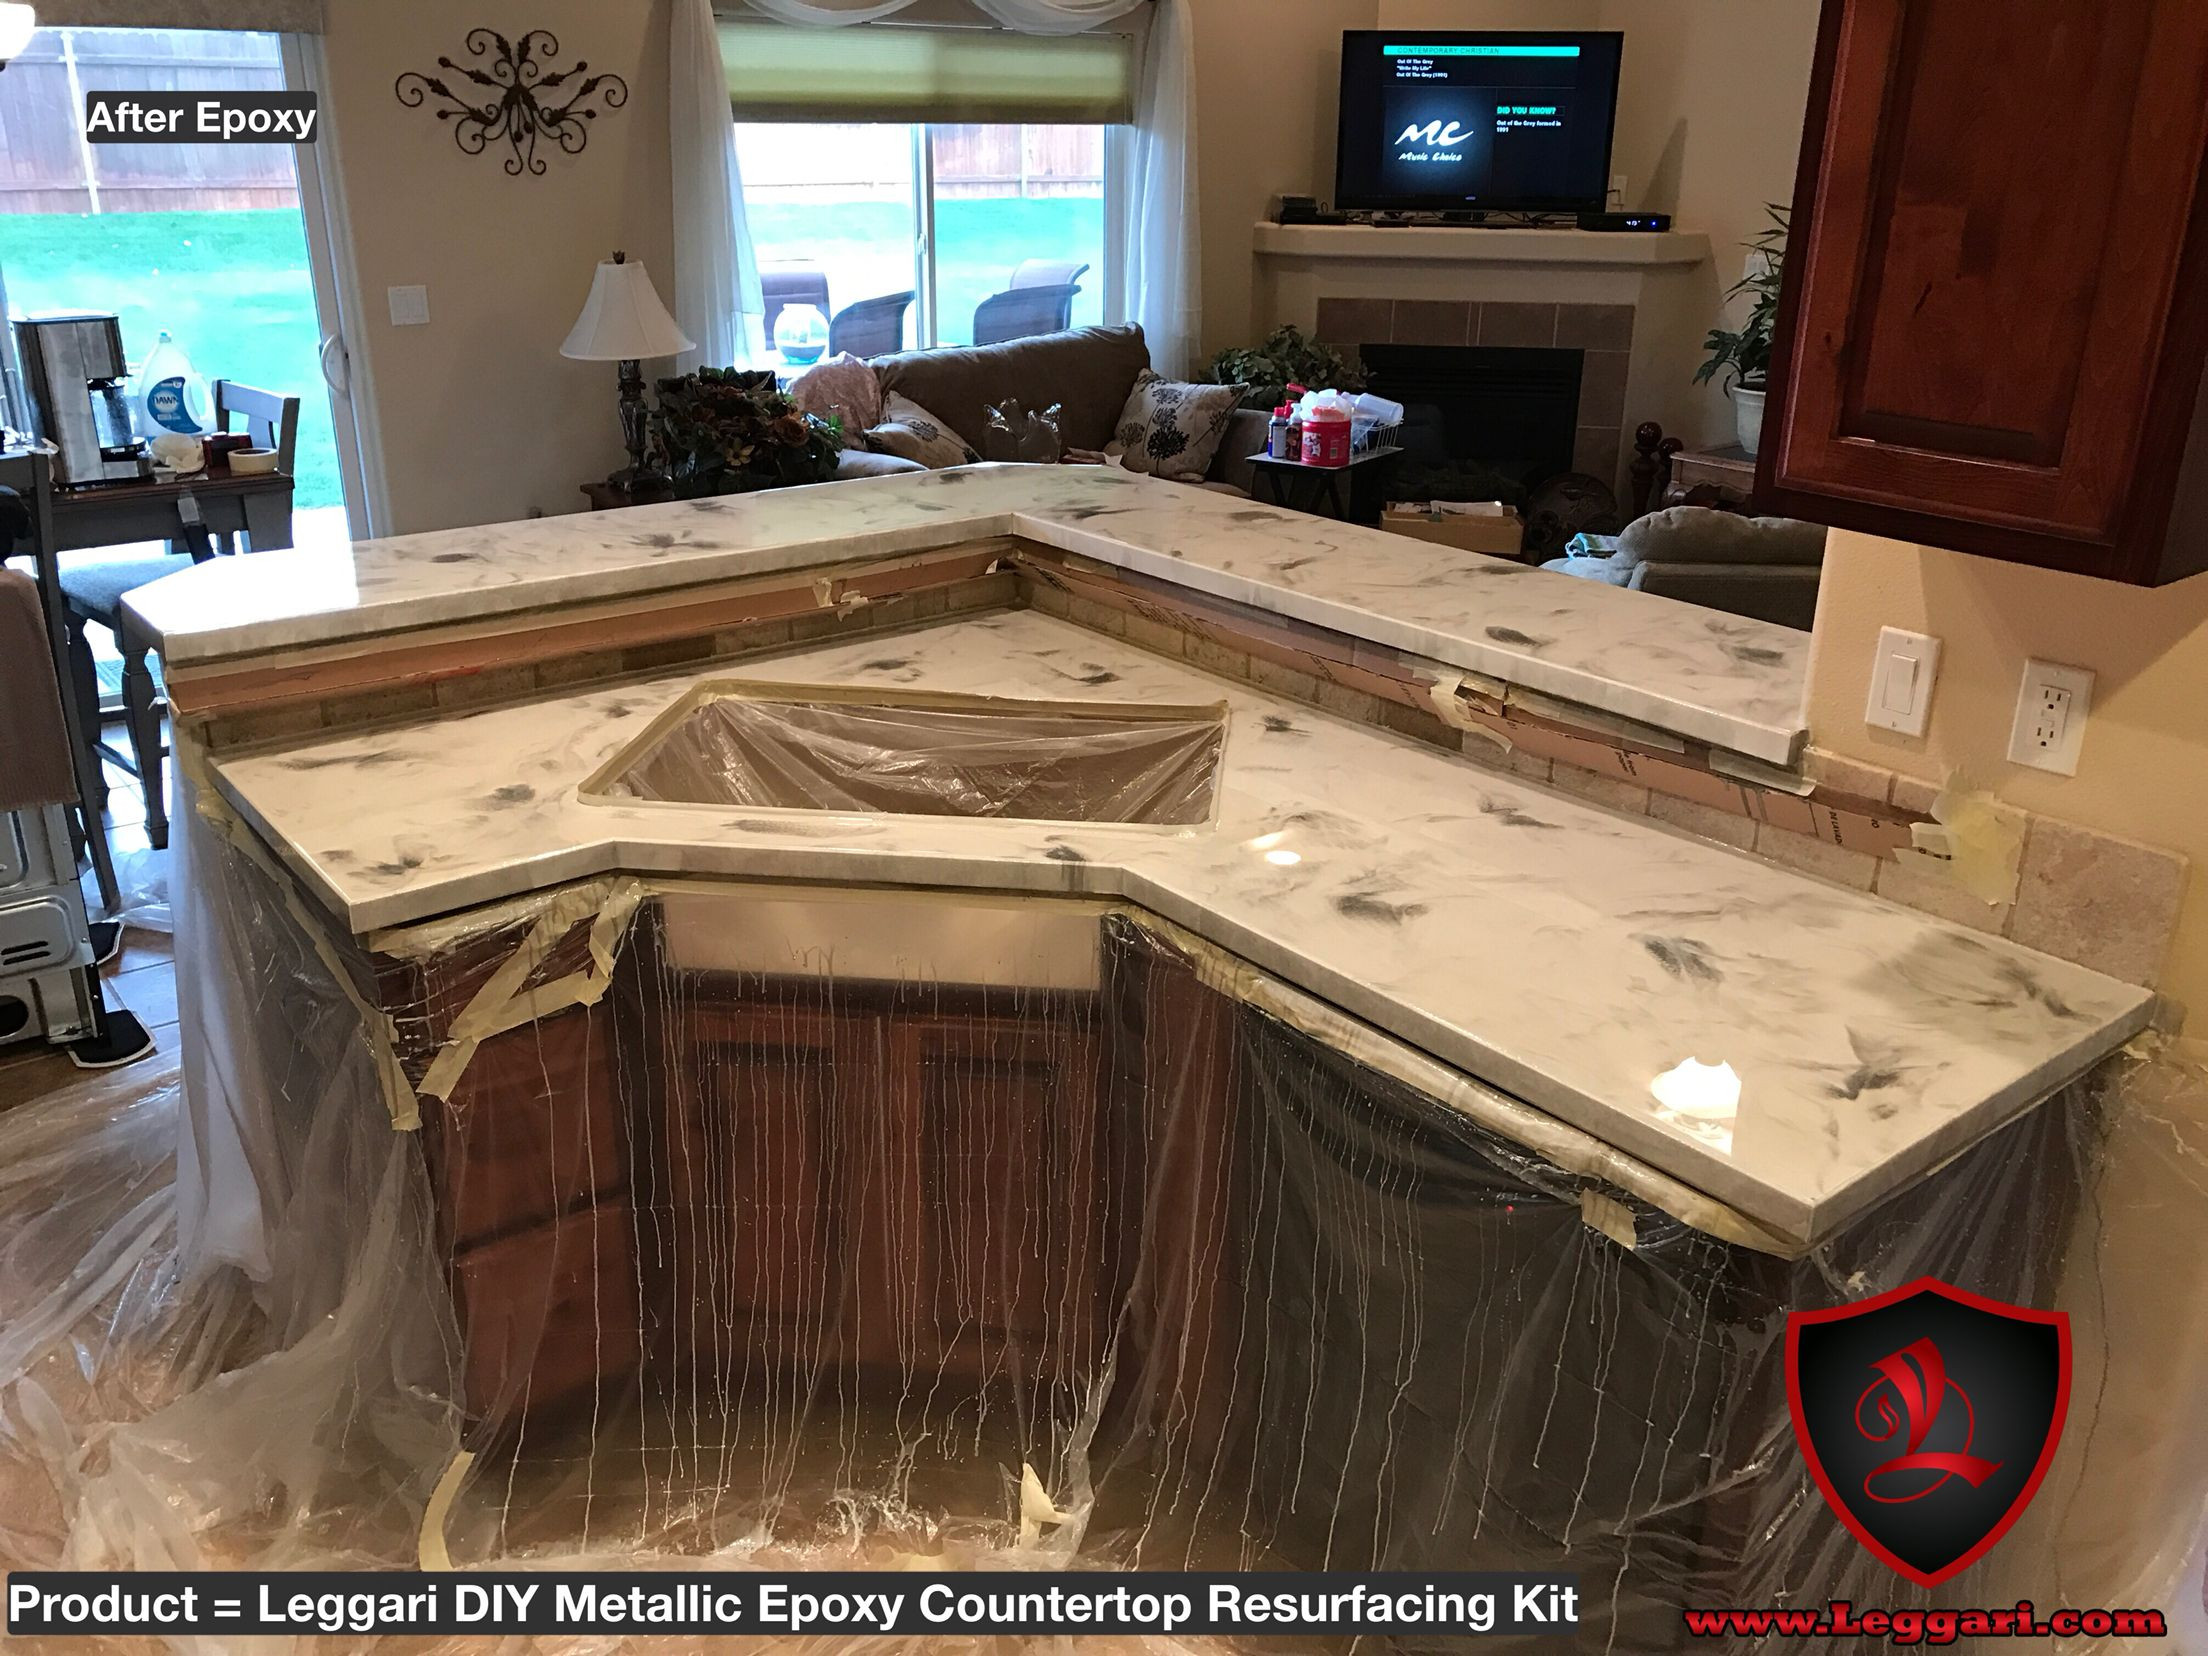 Best ideas about DIY Epoxy Countertops . Save or Pin diy metallic epoxy countertop kit installed in a Now.